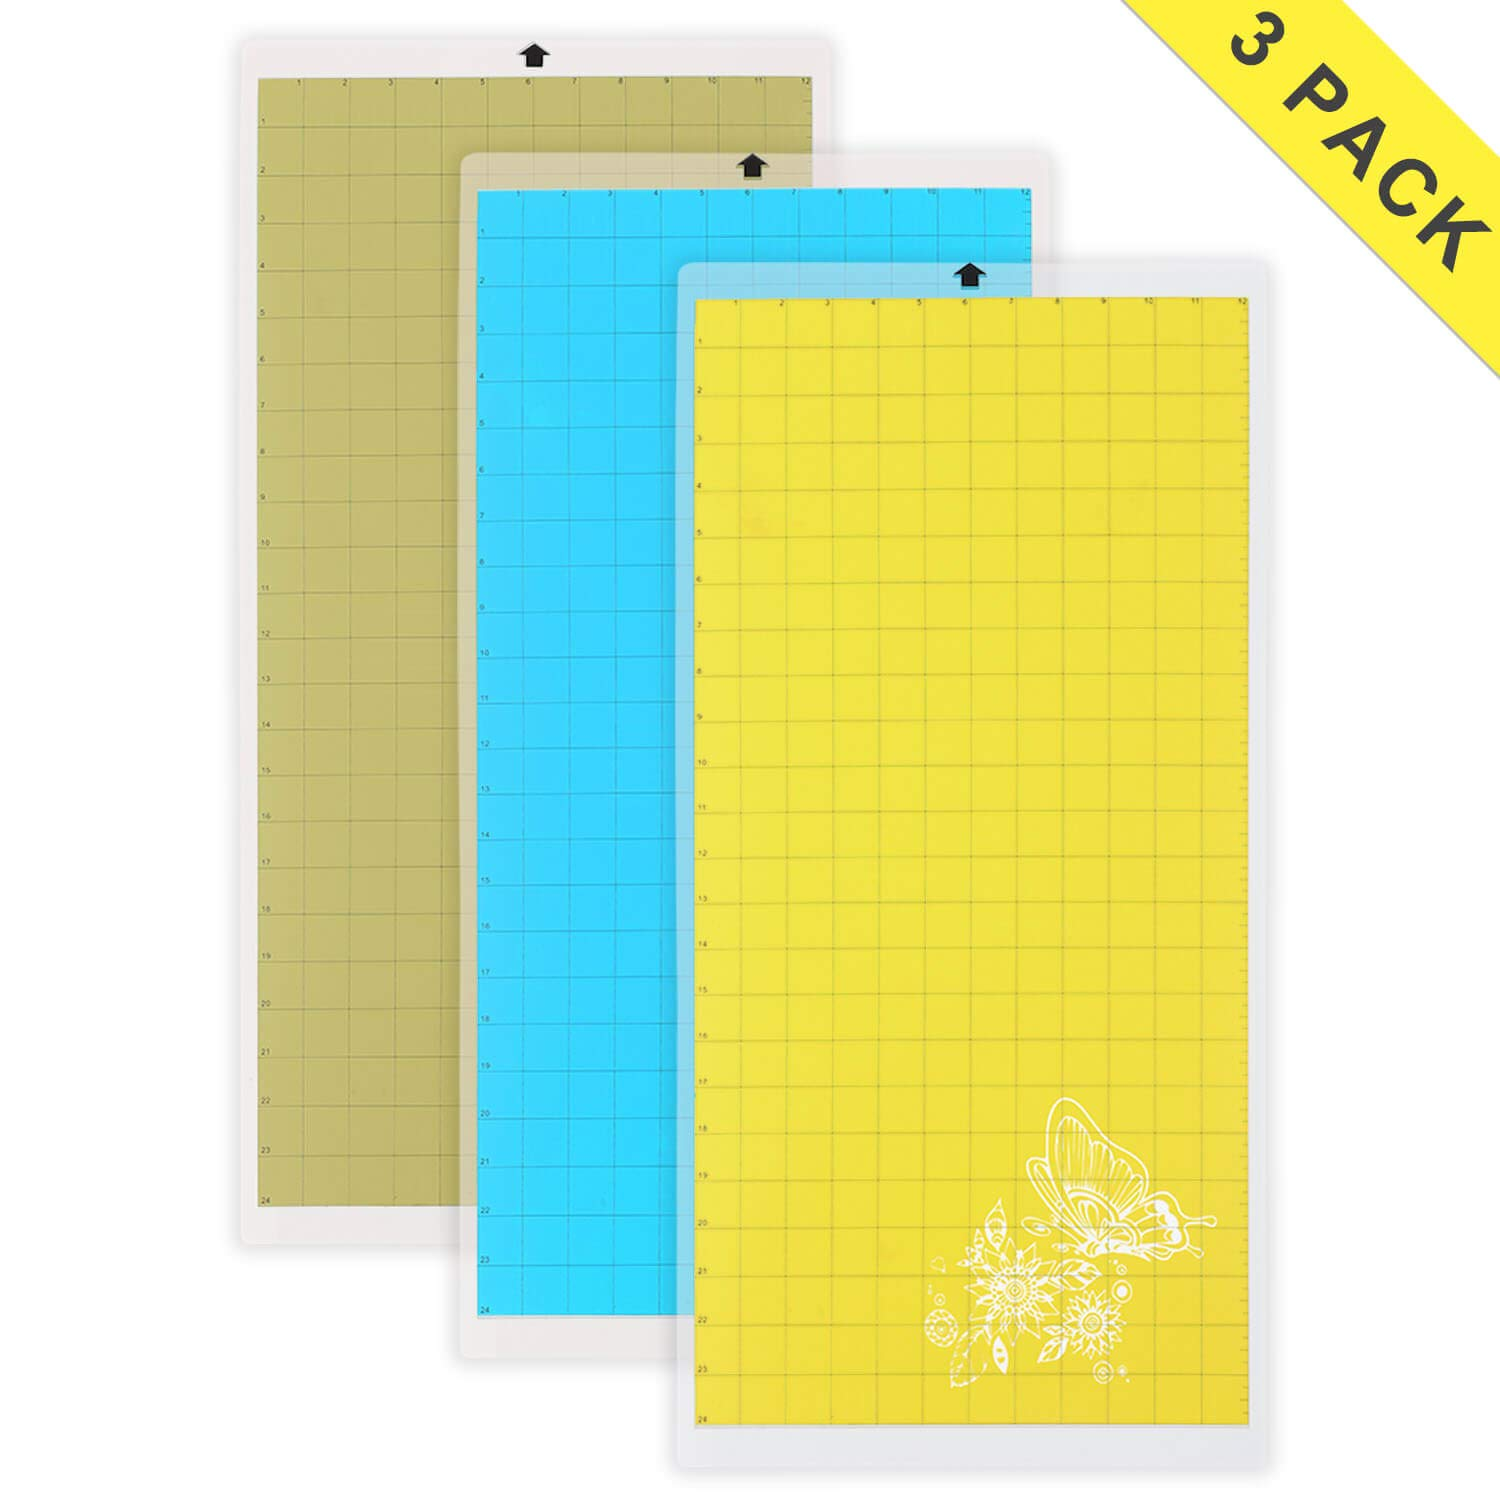 Cutting Mat Variety 3 Packs 12'' x 24'' - Strong, Standard, Light Grip Adhesive Cutting Mat Suit for Cricut, for Silhouette Cameo by Tsuning